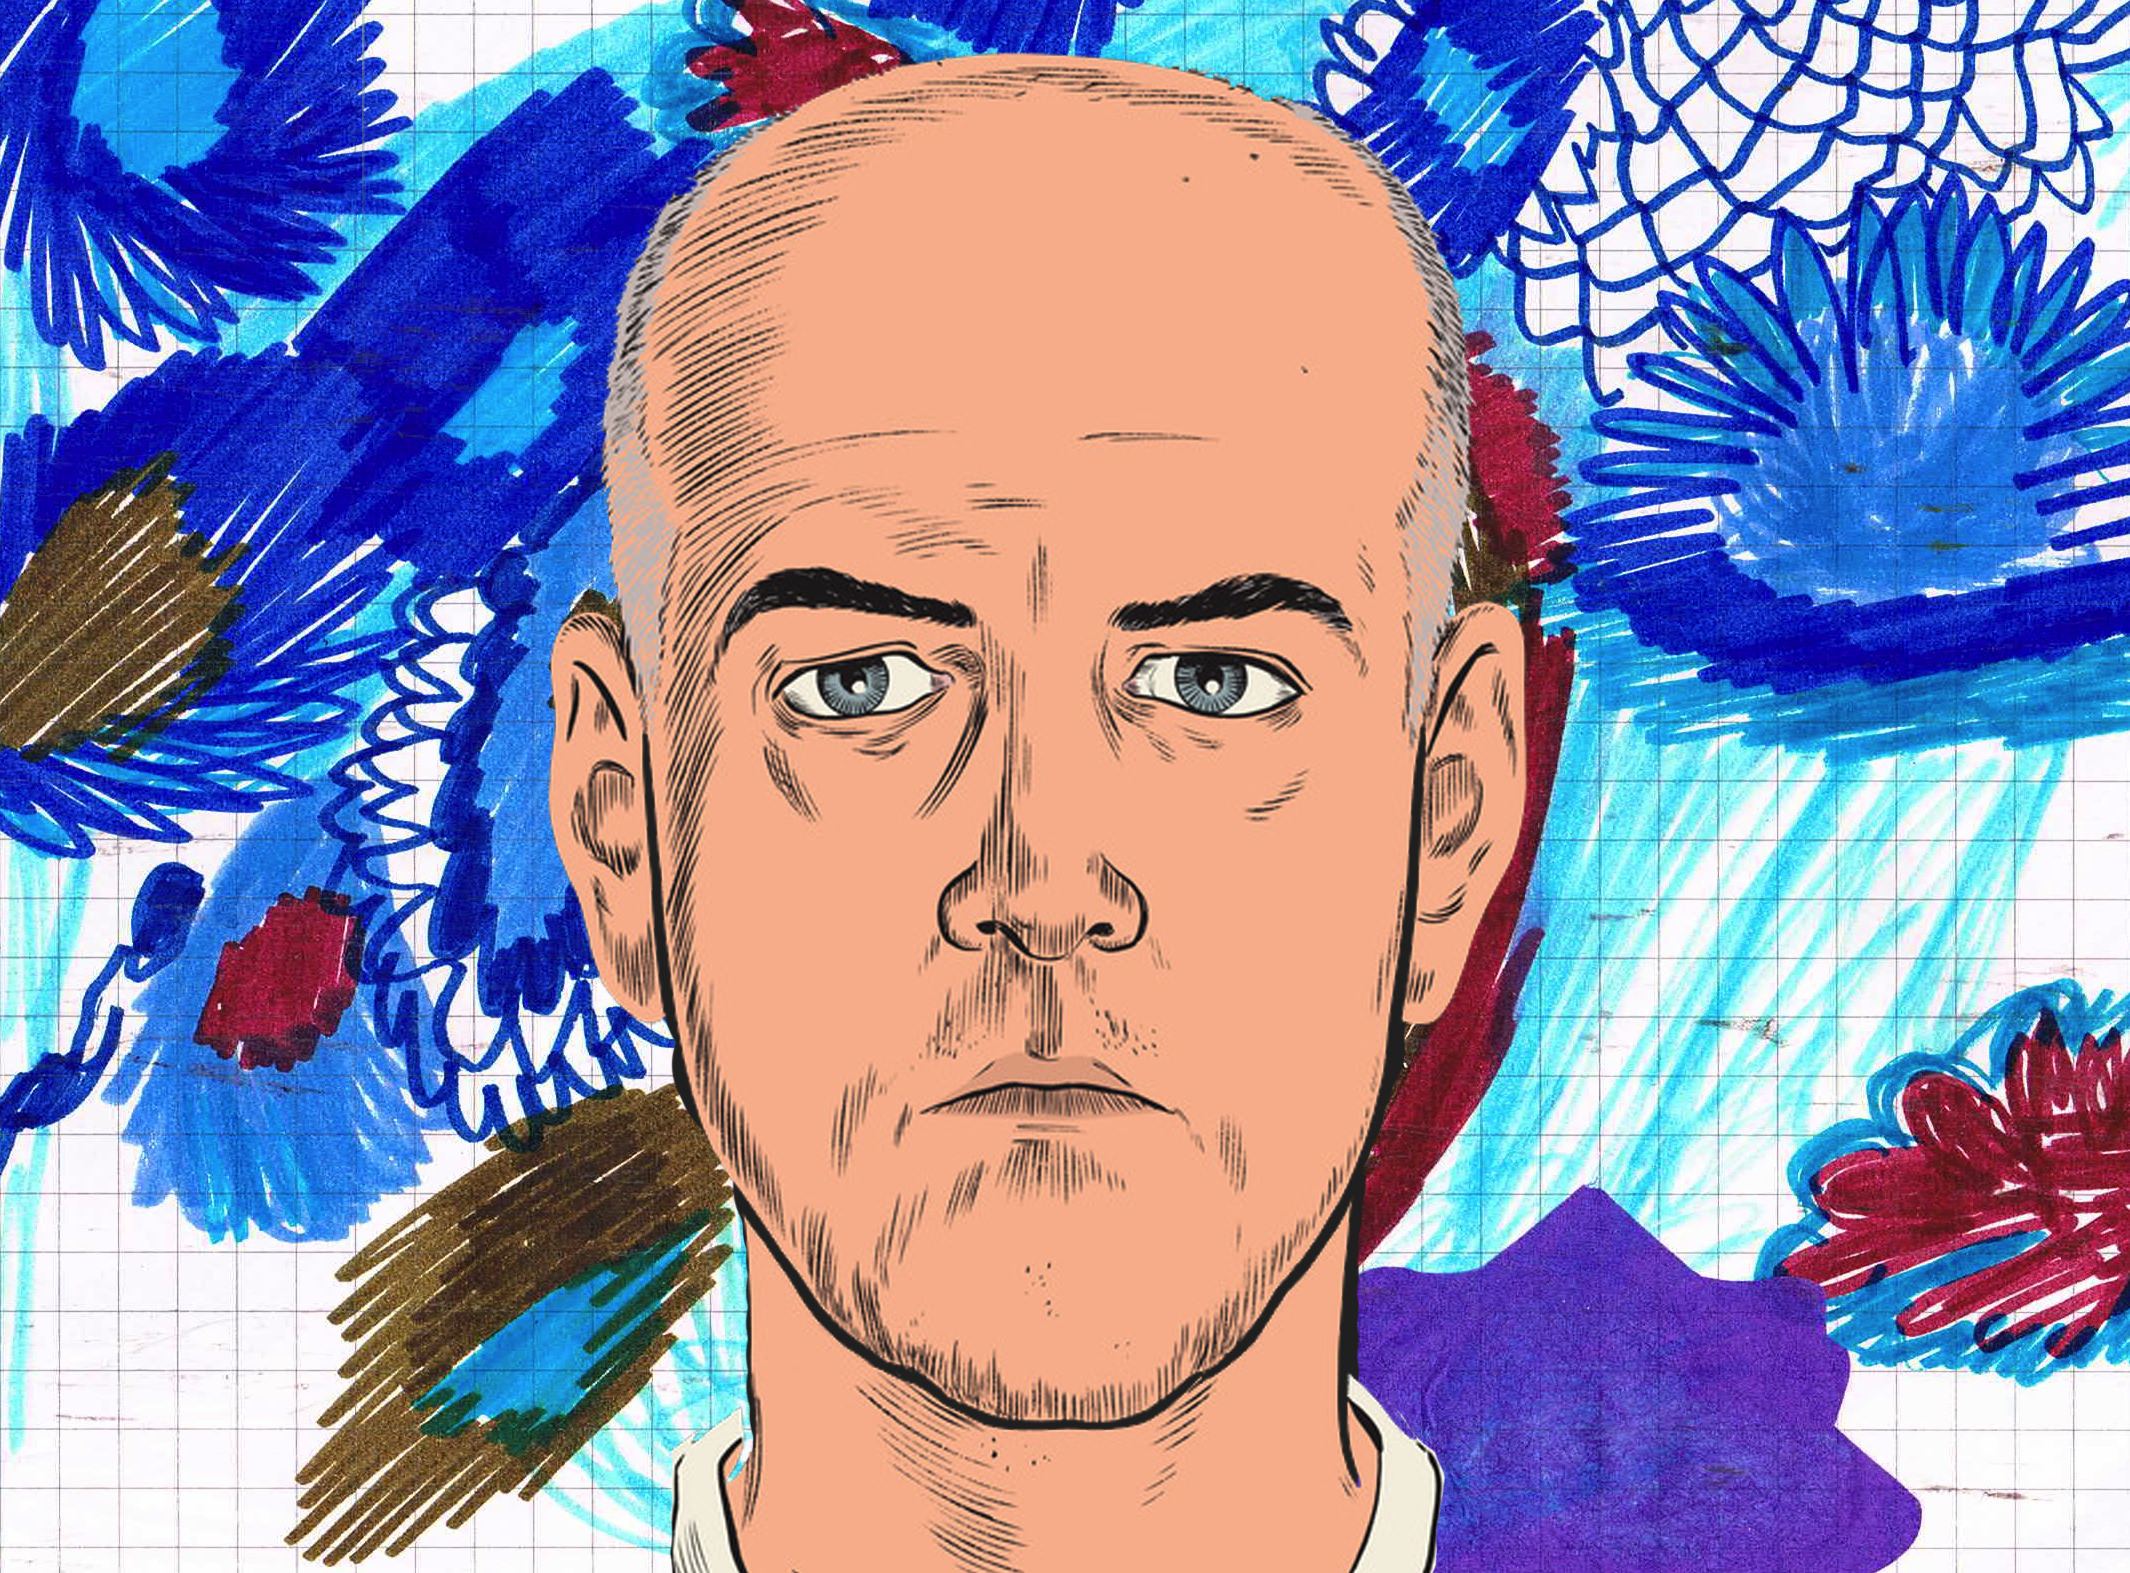 On Discovery: An Interview With Daniel Clowes